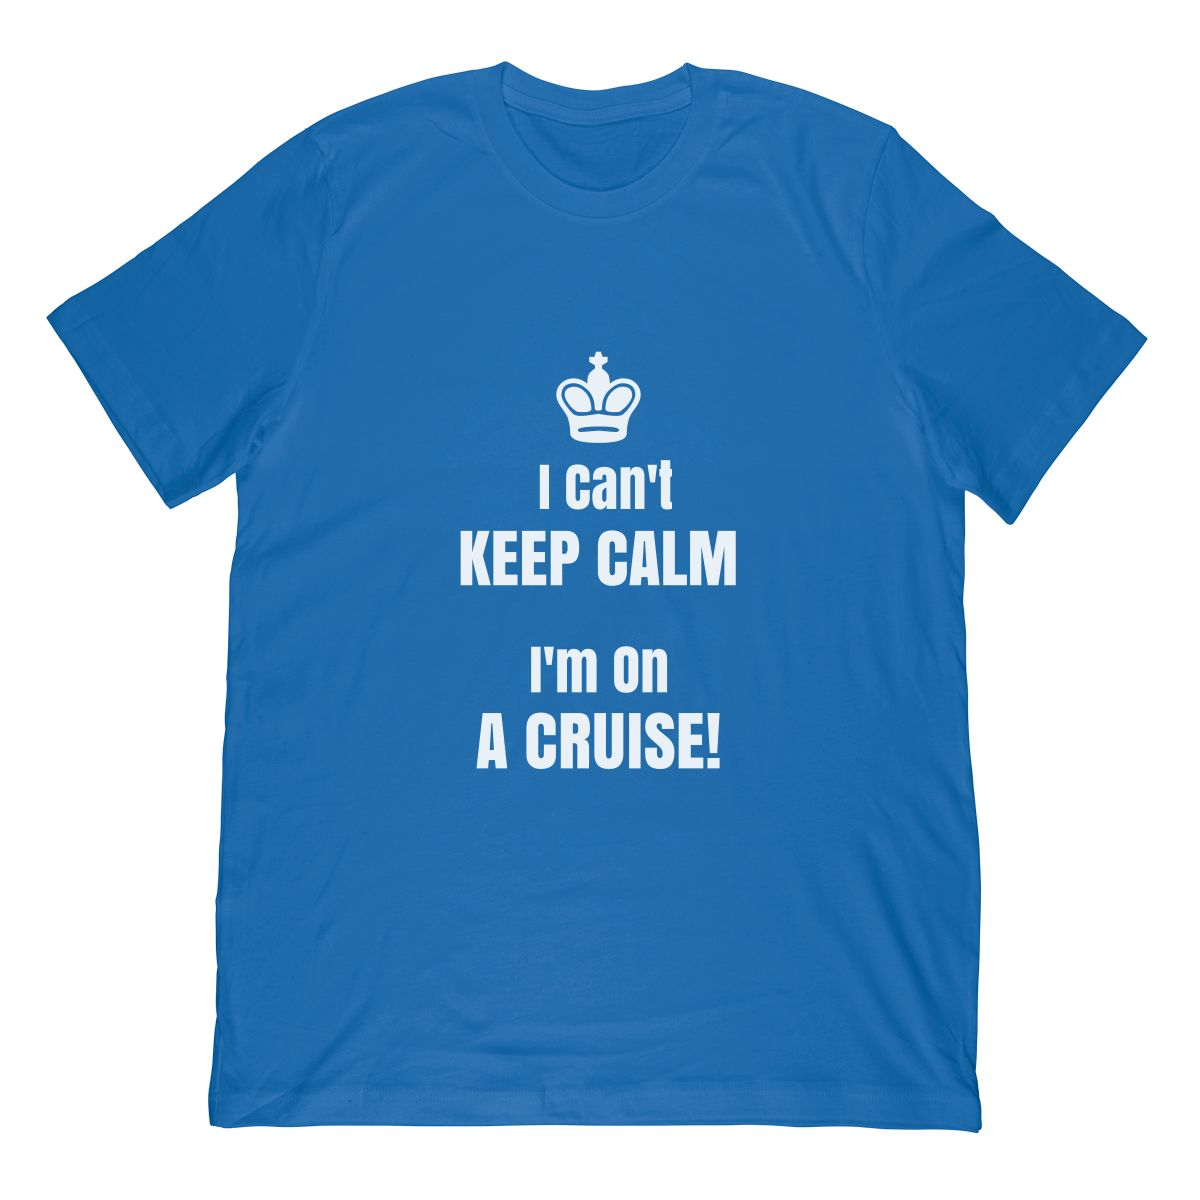 Funny Cruise Shirt I Can't Keep Calm I'm On A Cruise!